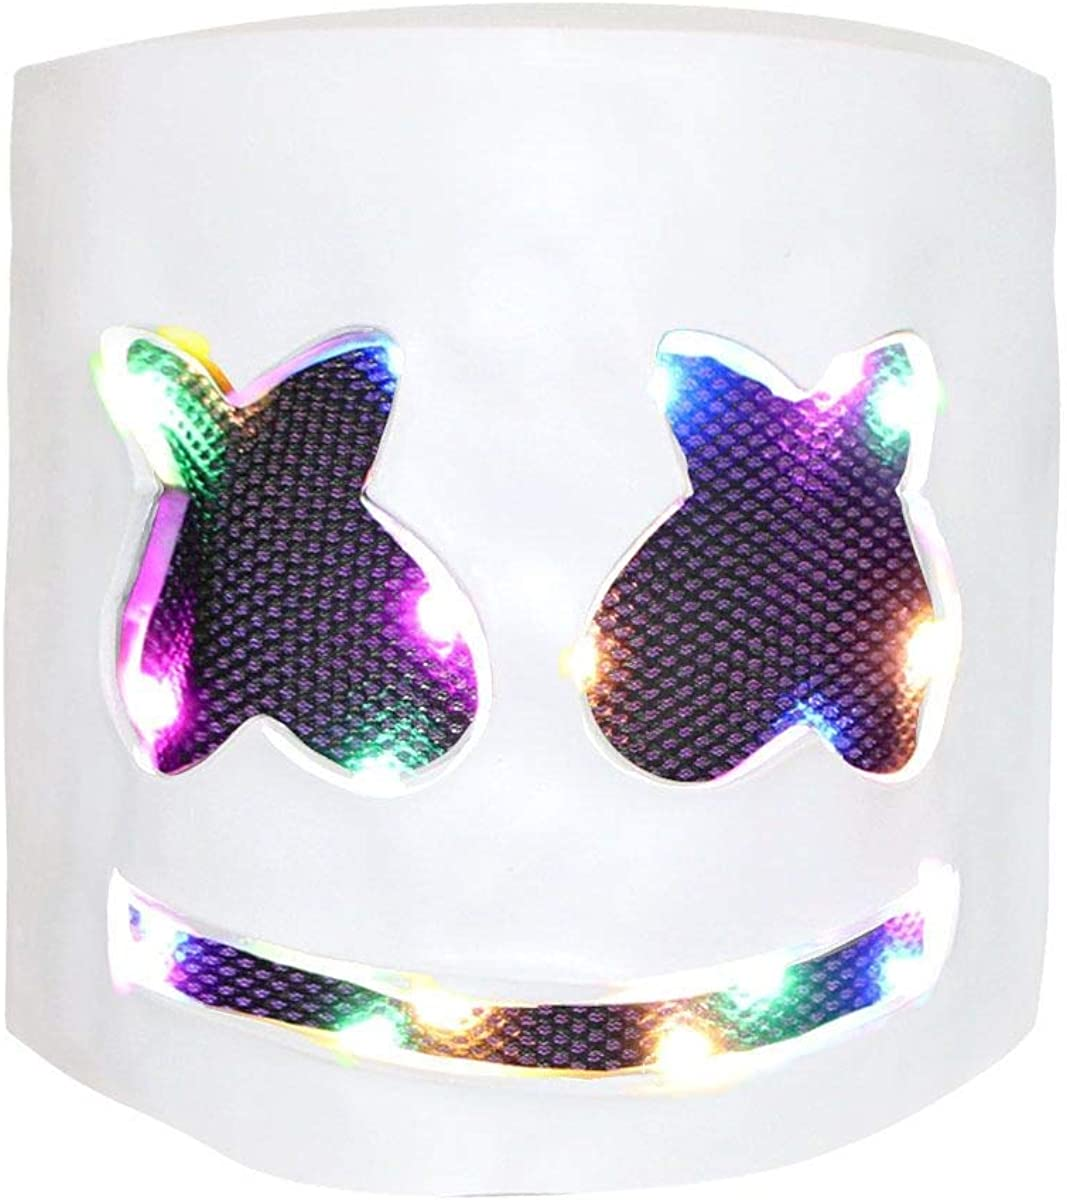 DJ Mask  Music Festival Helmets  Full Head Masks Halloween Party Props Costume Masks White  LED Light up